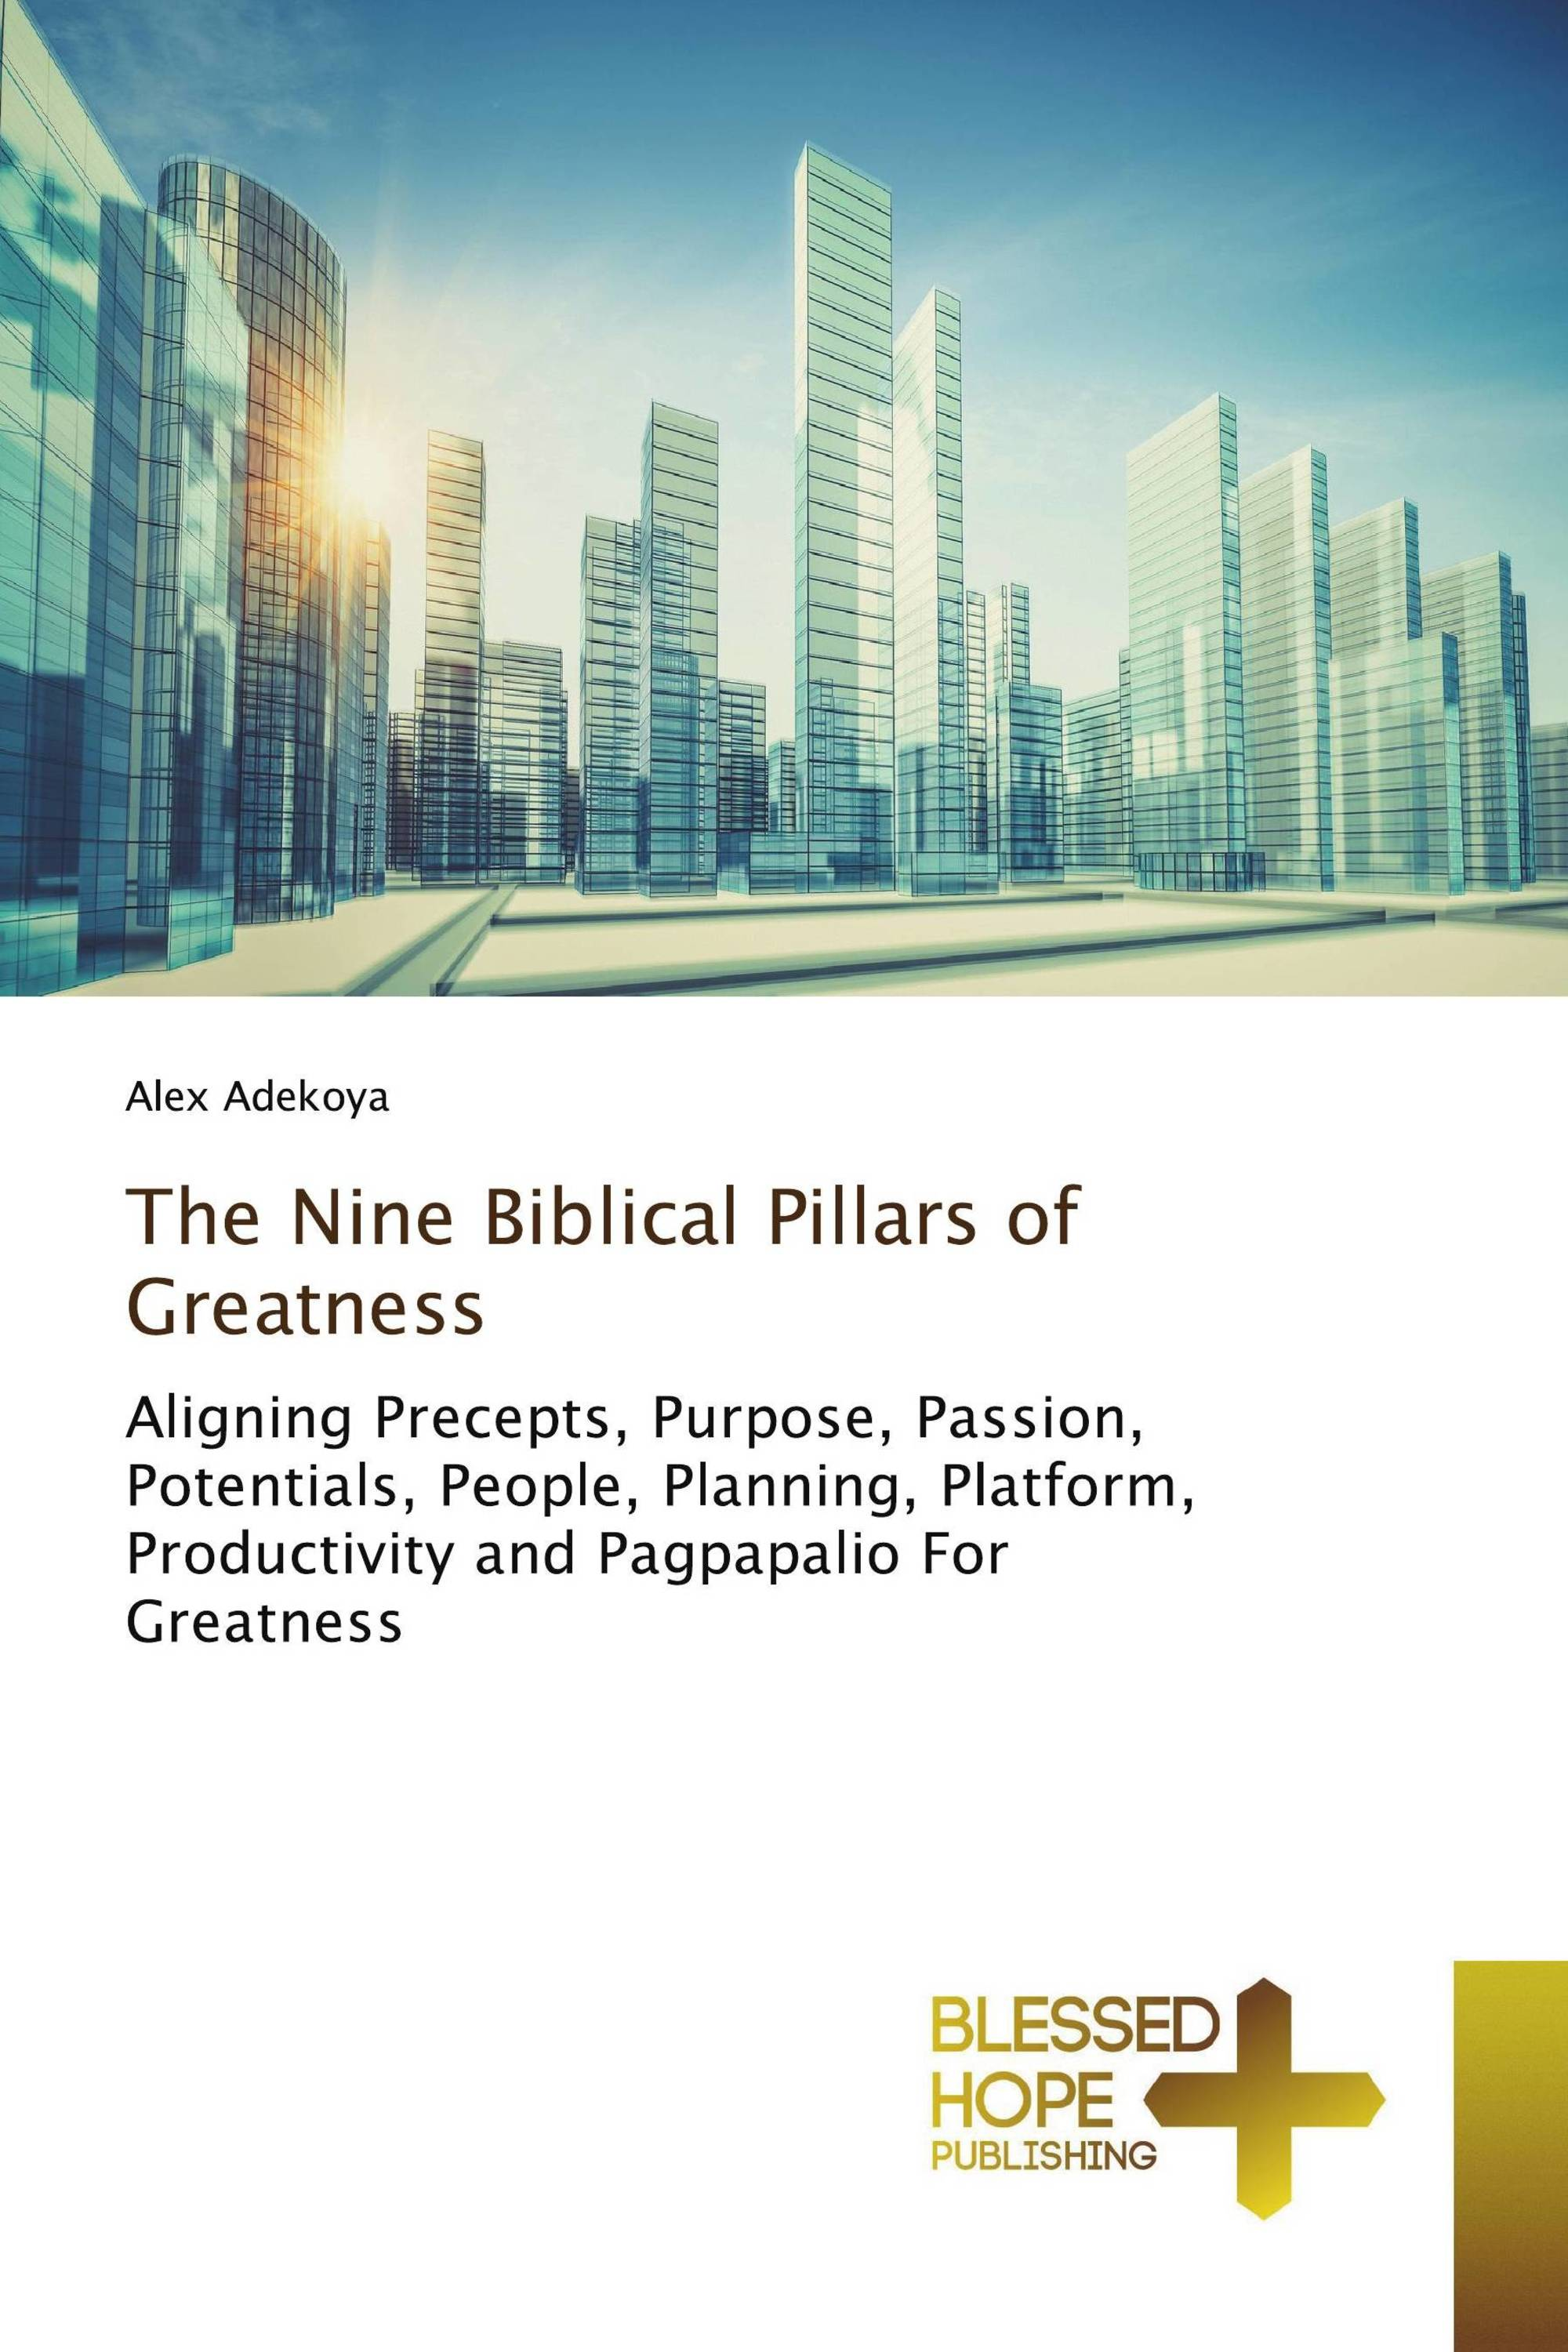 The Nine Biblical Pillars of Greatness